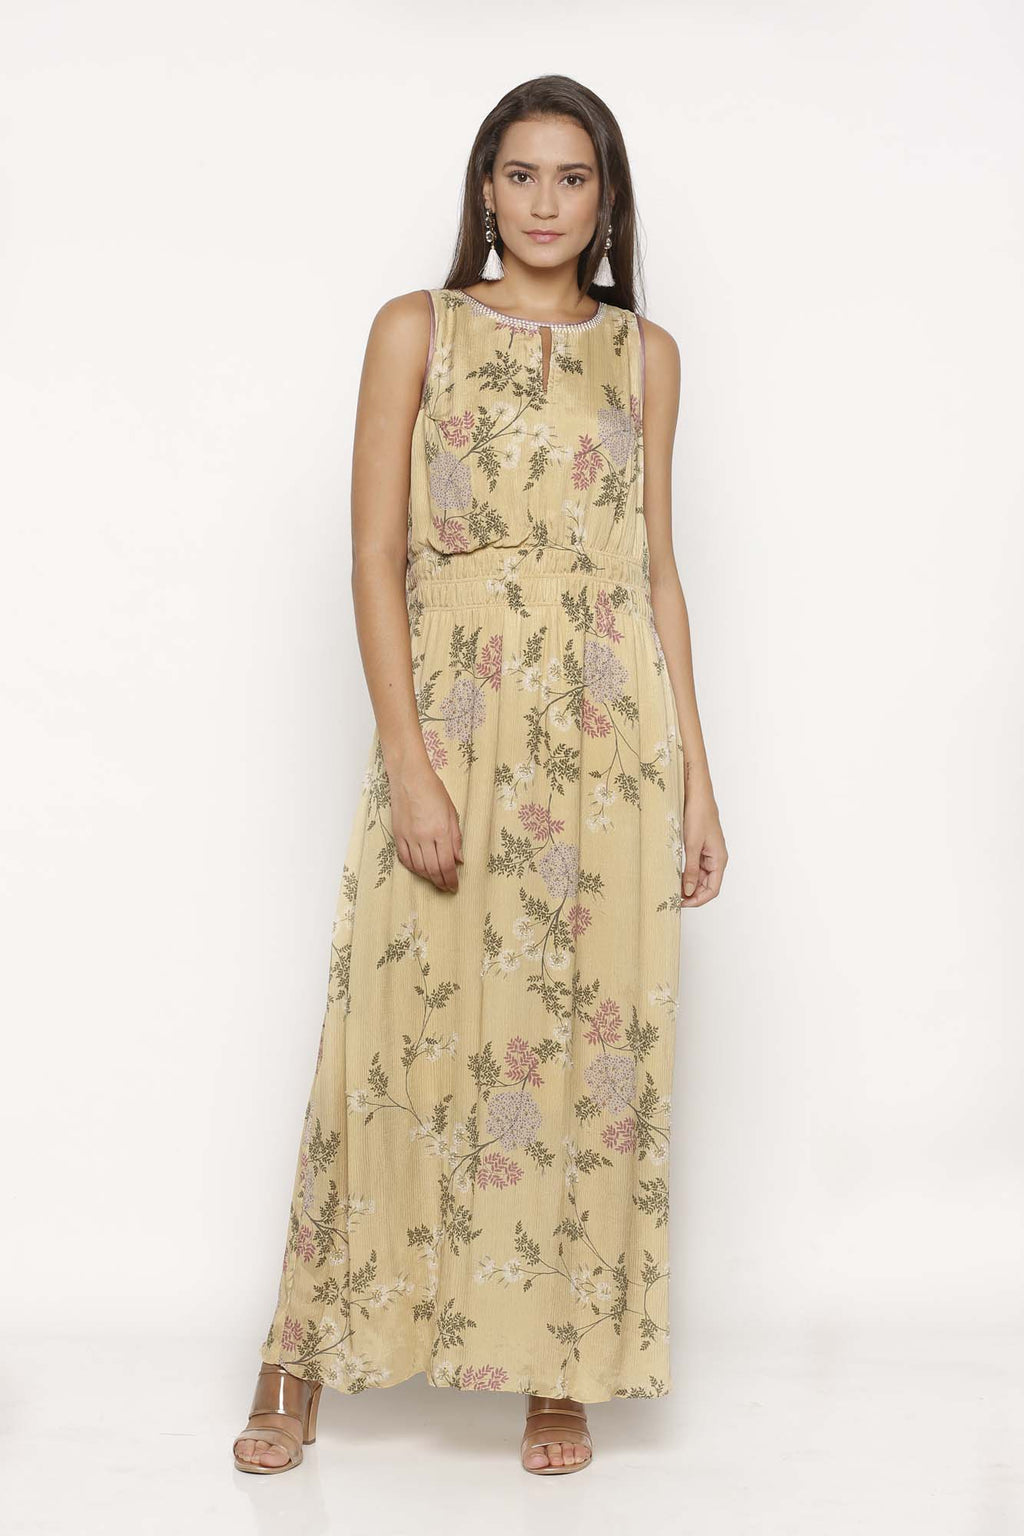 Pastel Yellow Printed Maxi Dress - Riviera Closet